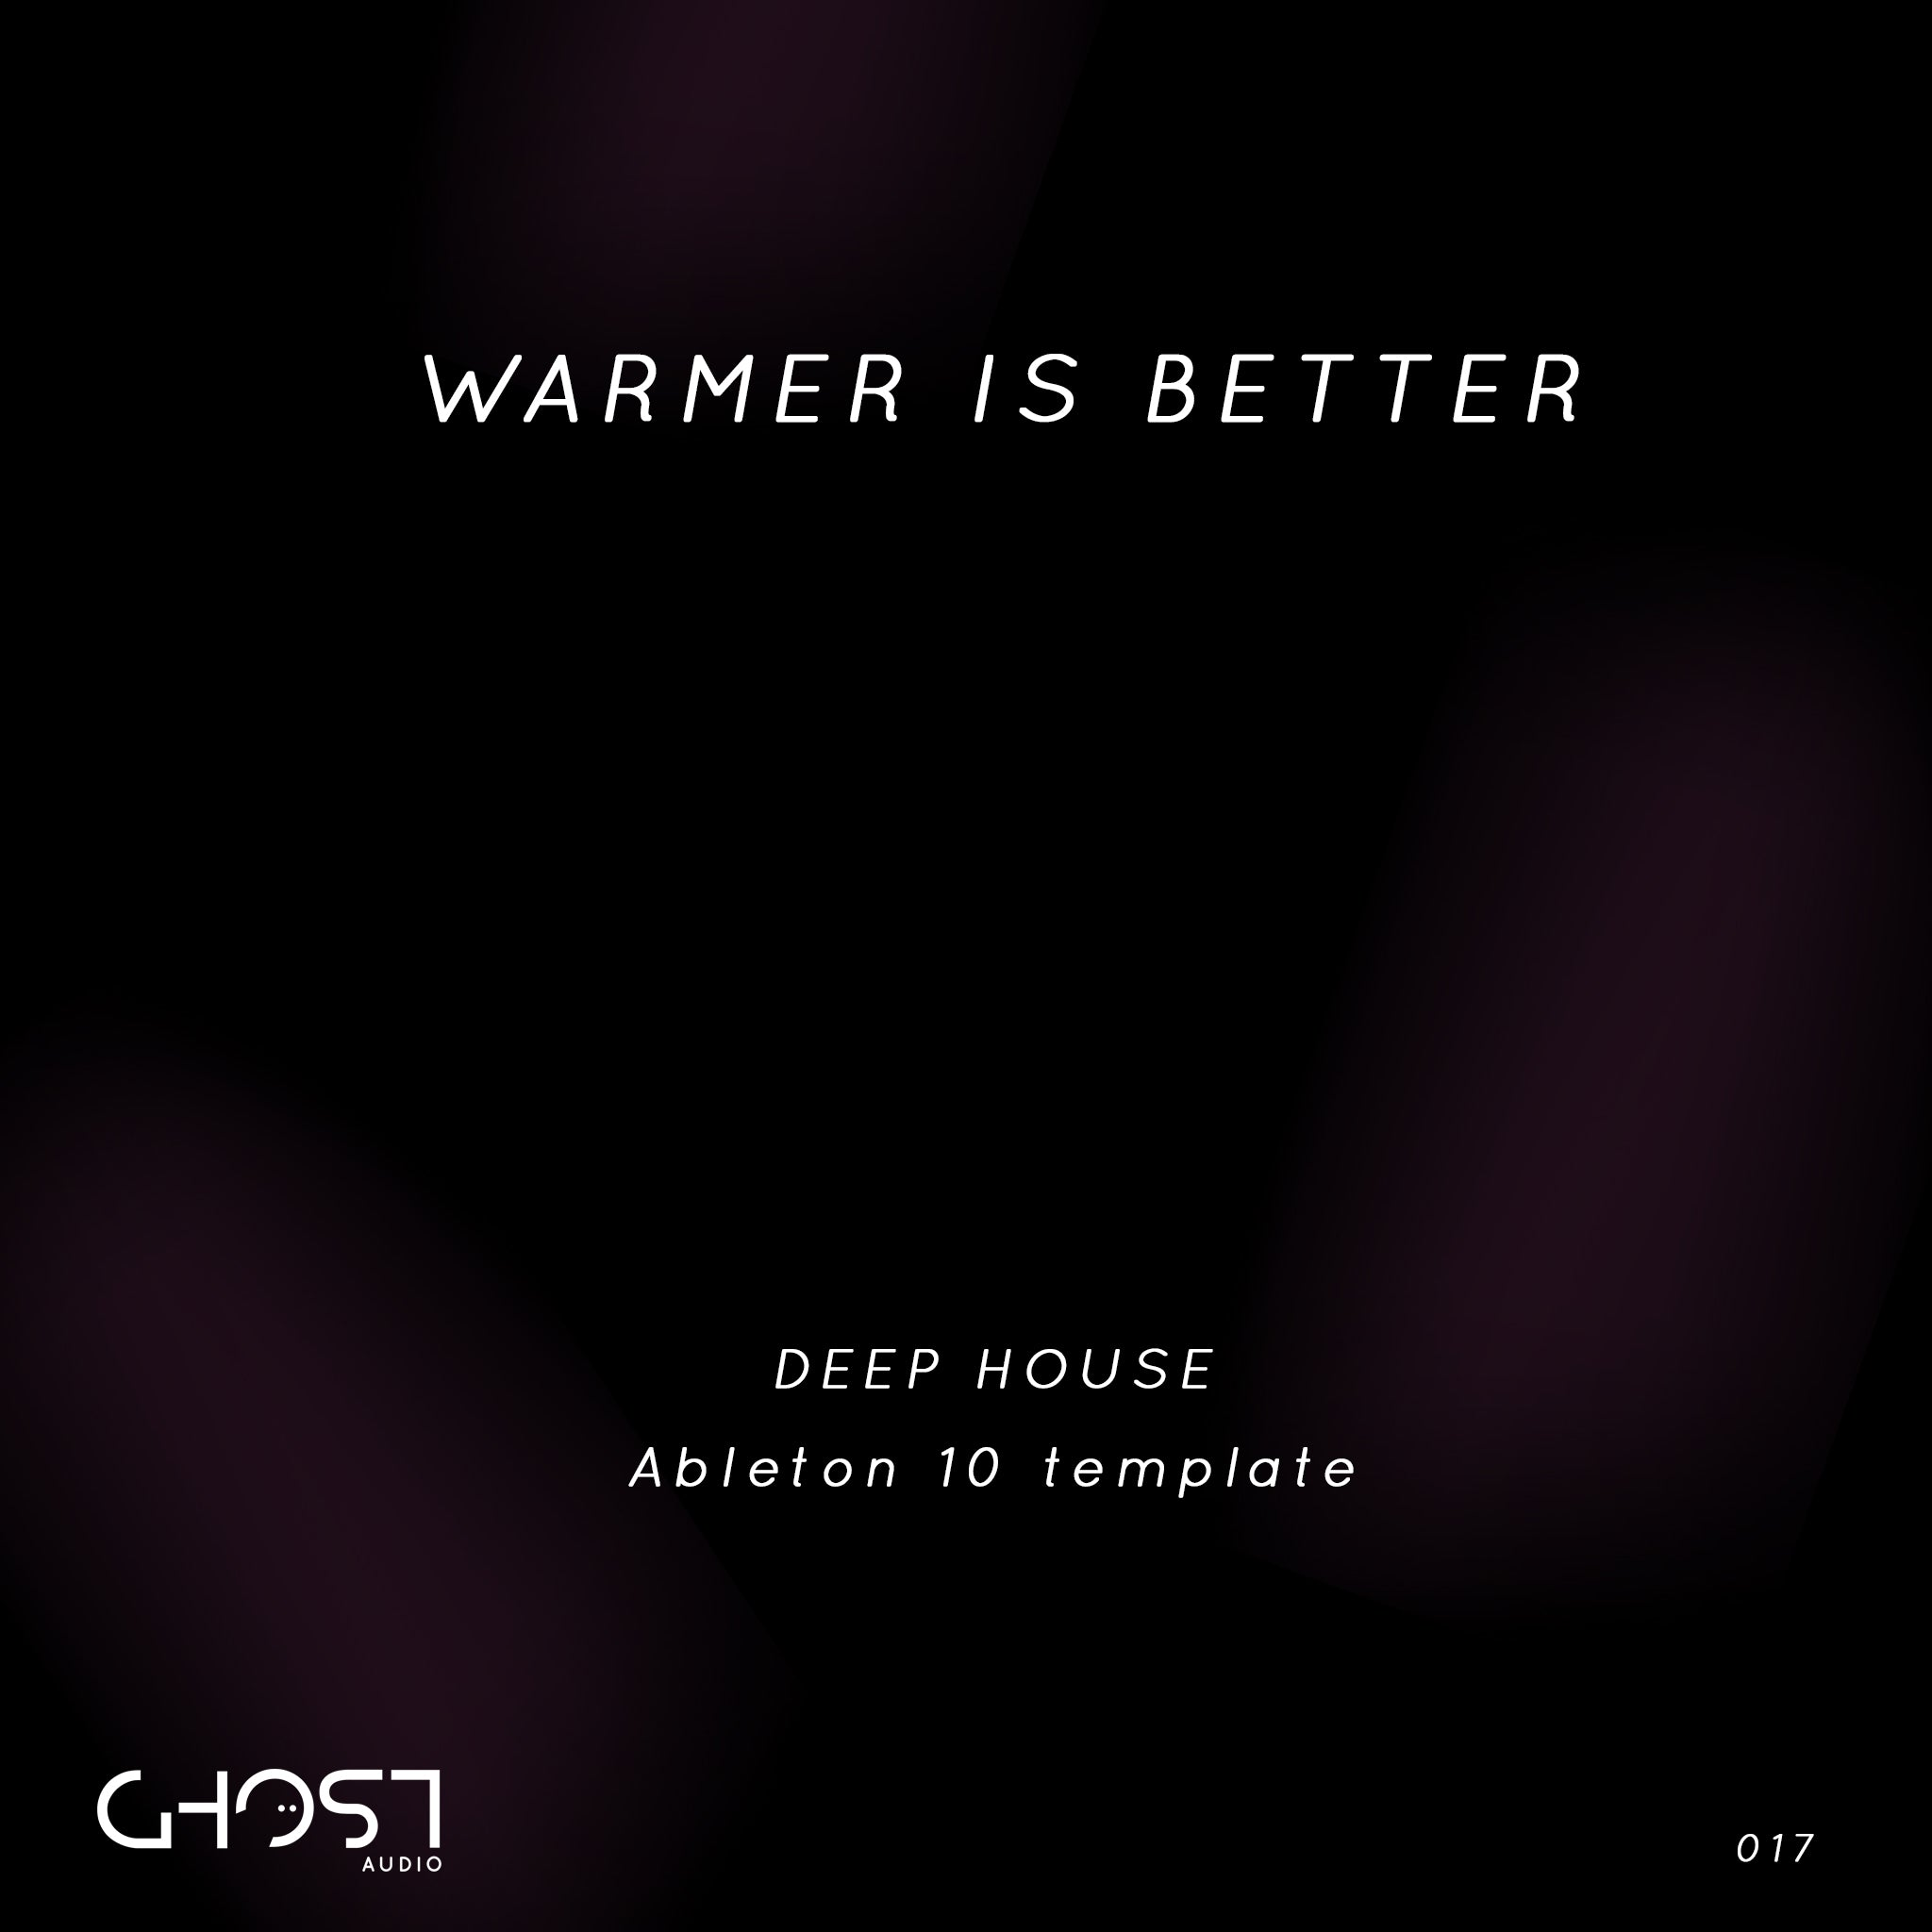 WARMER IS BETTER - DEEP HOUSE ( ABLETON TEMPLATE )